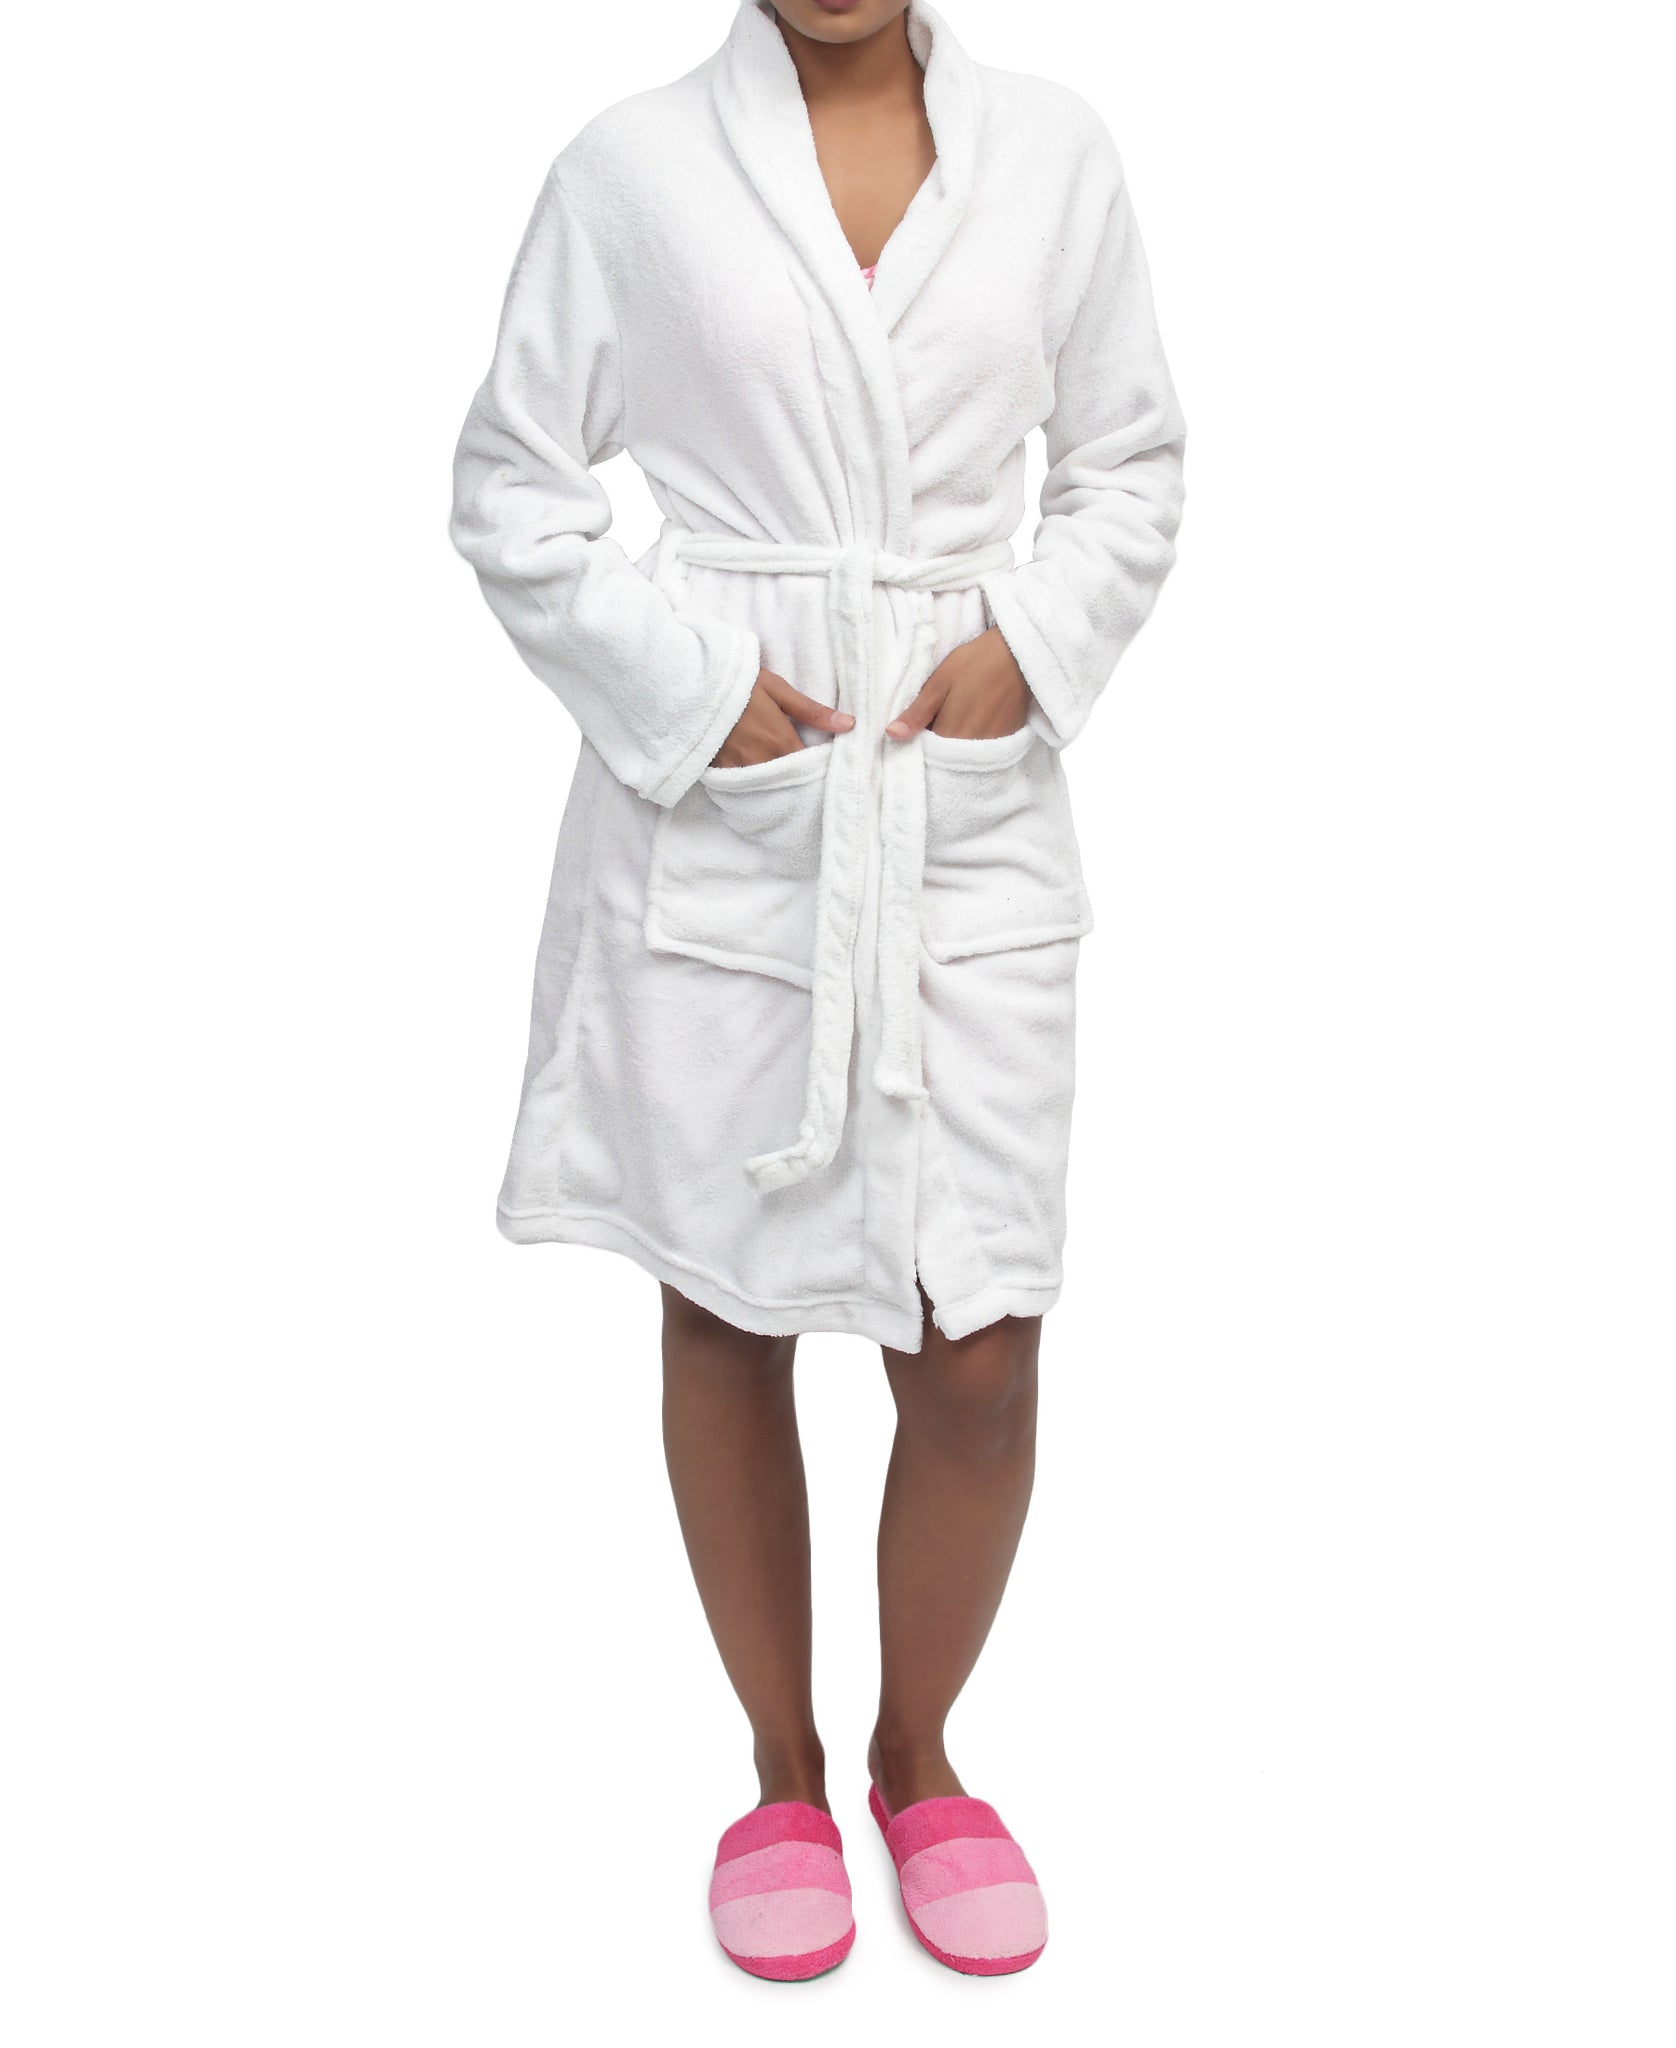 Bathrobe - White